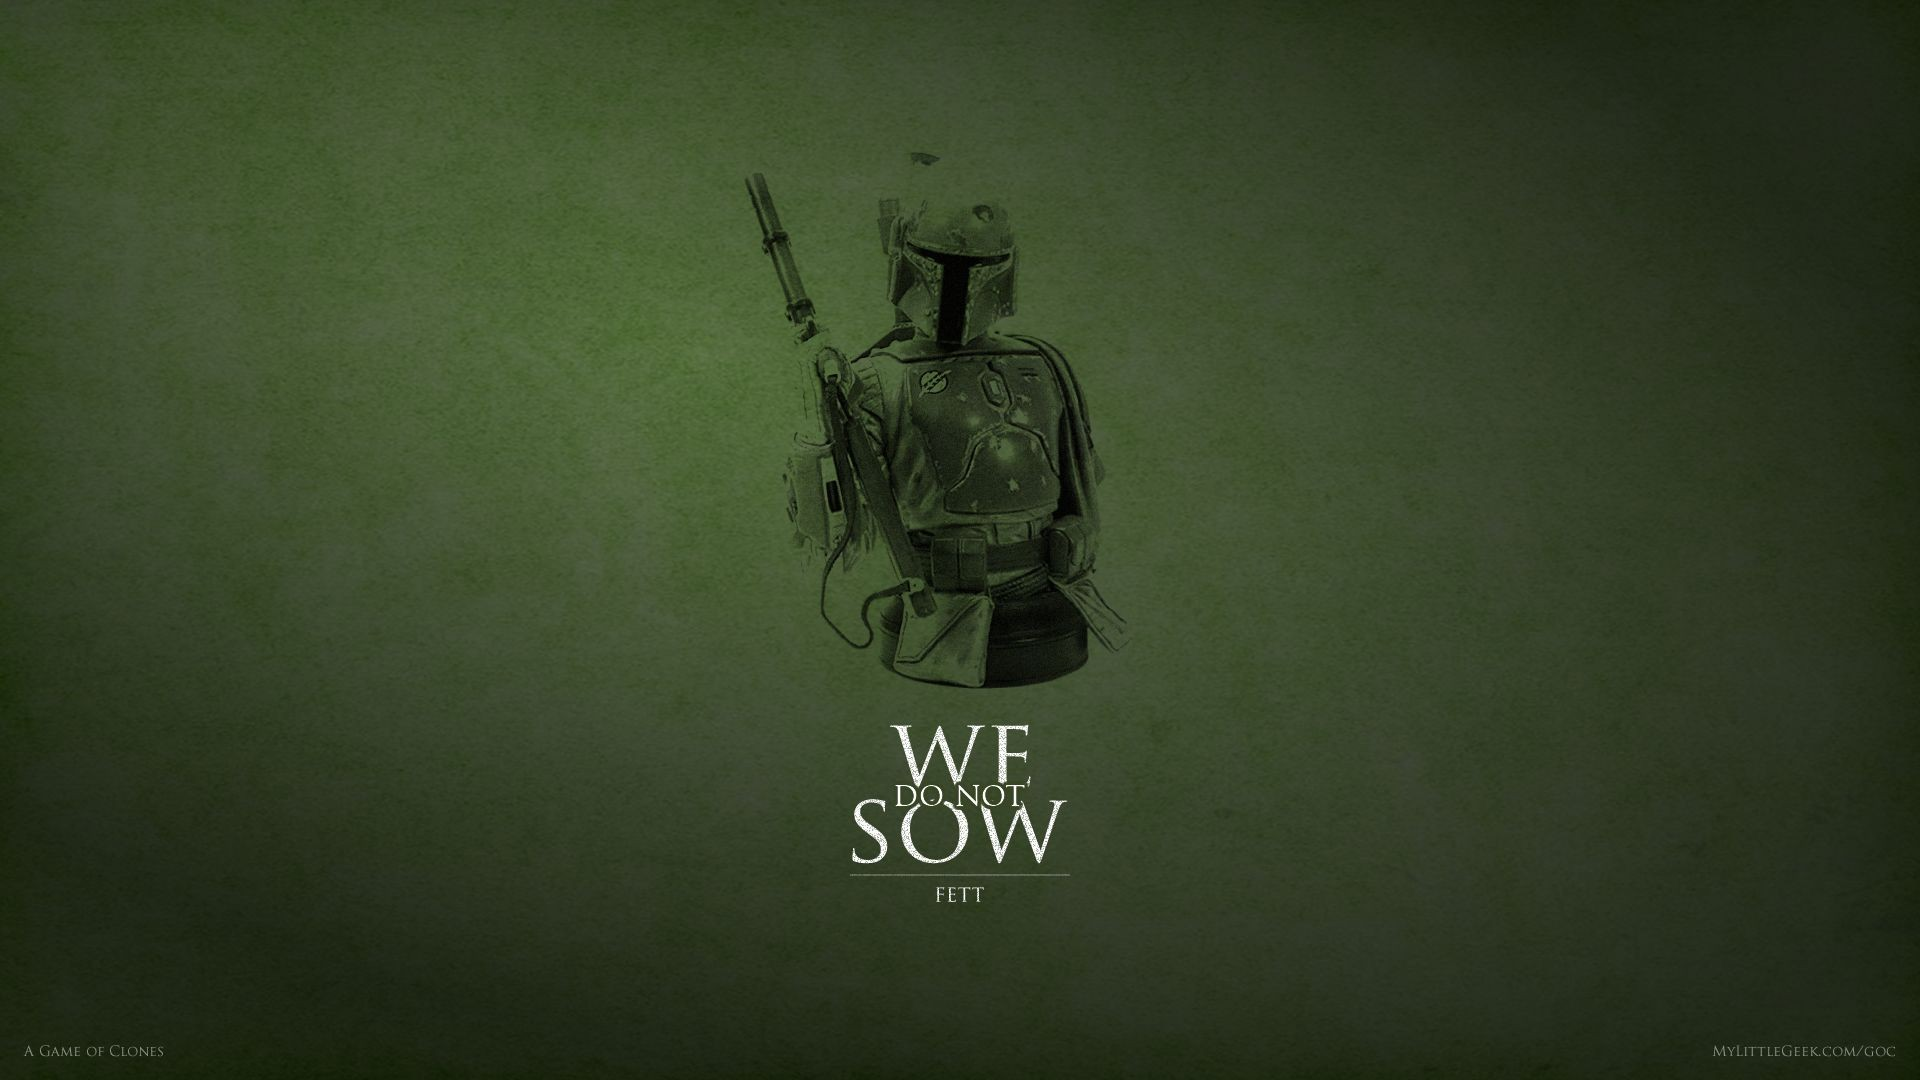 Star Wars Game Of Thrones F Wallpaper 1920x1080 104219 Wallpaperup